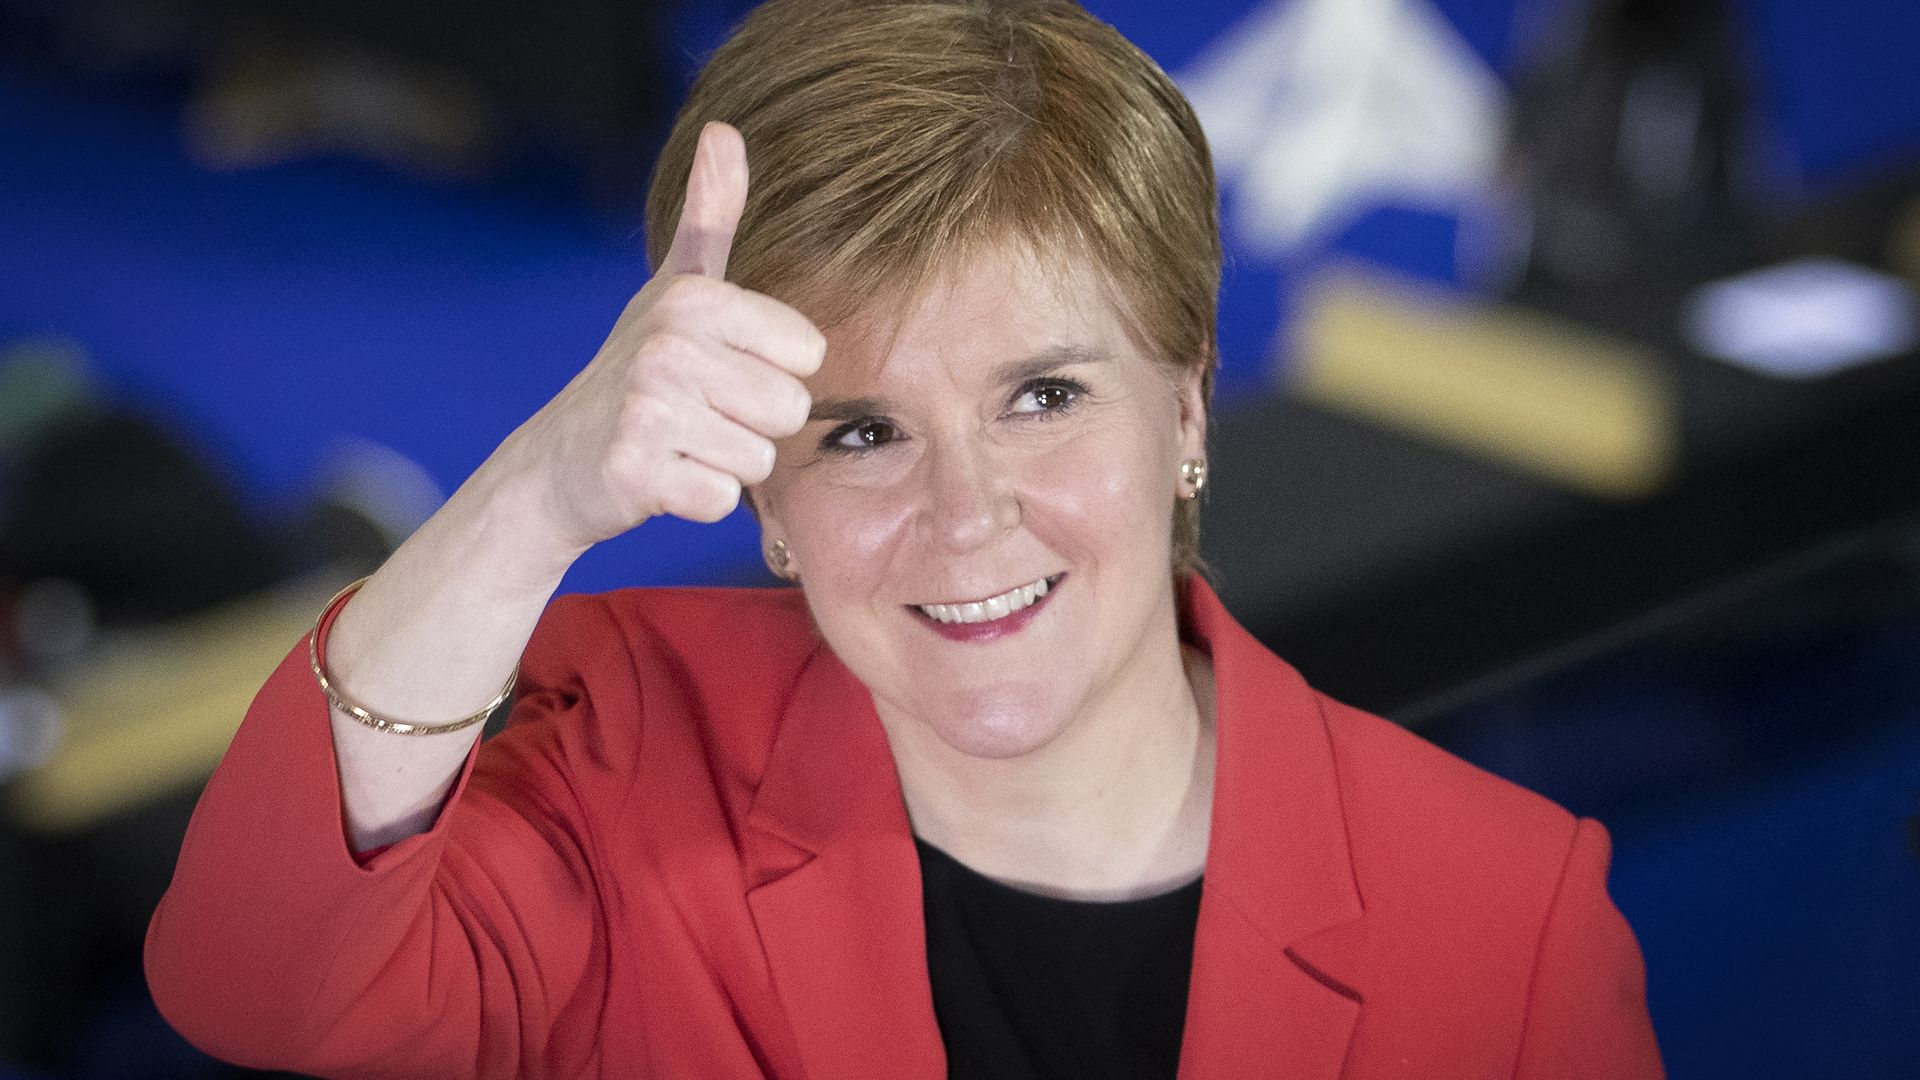 First Minister and SNP party leader Nicola Sturgeon at the count for the Scottish Parliamentary Elections - Credit: PA